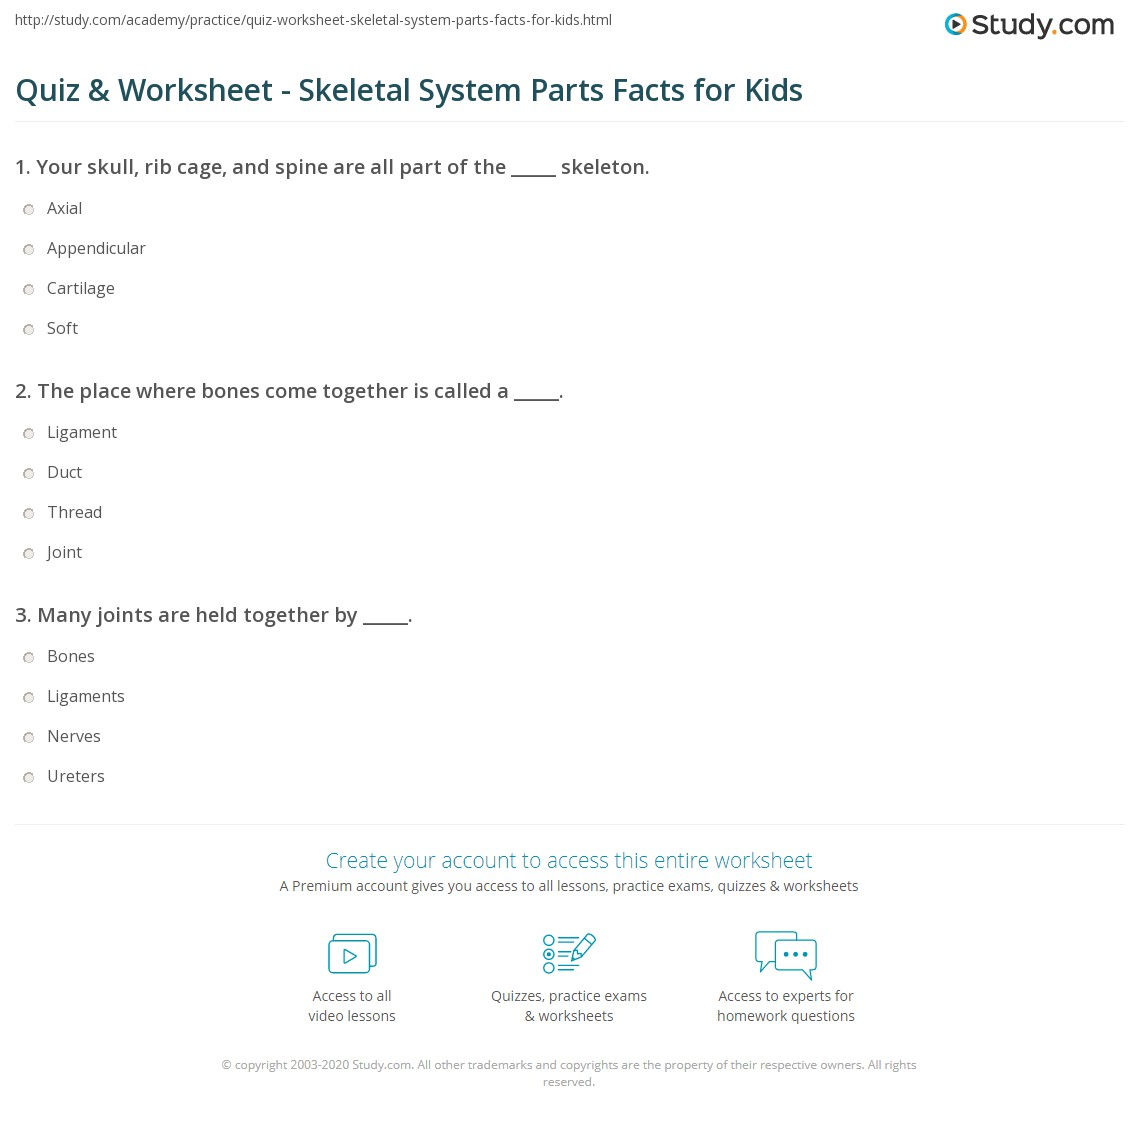 Quiz Worksheet Skeletal System Parts Facts For Kids Study